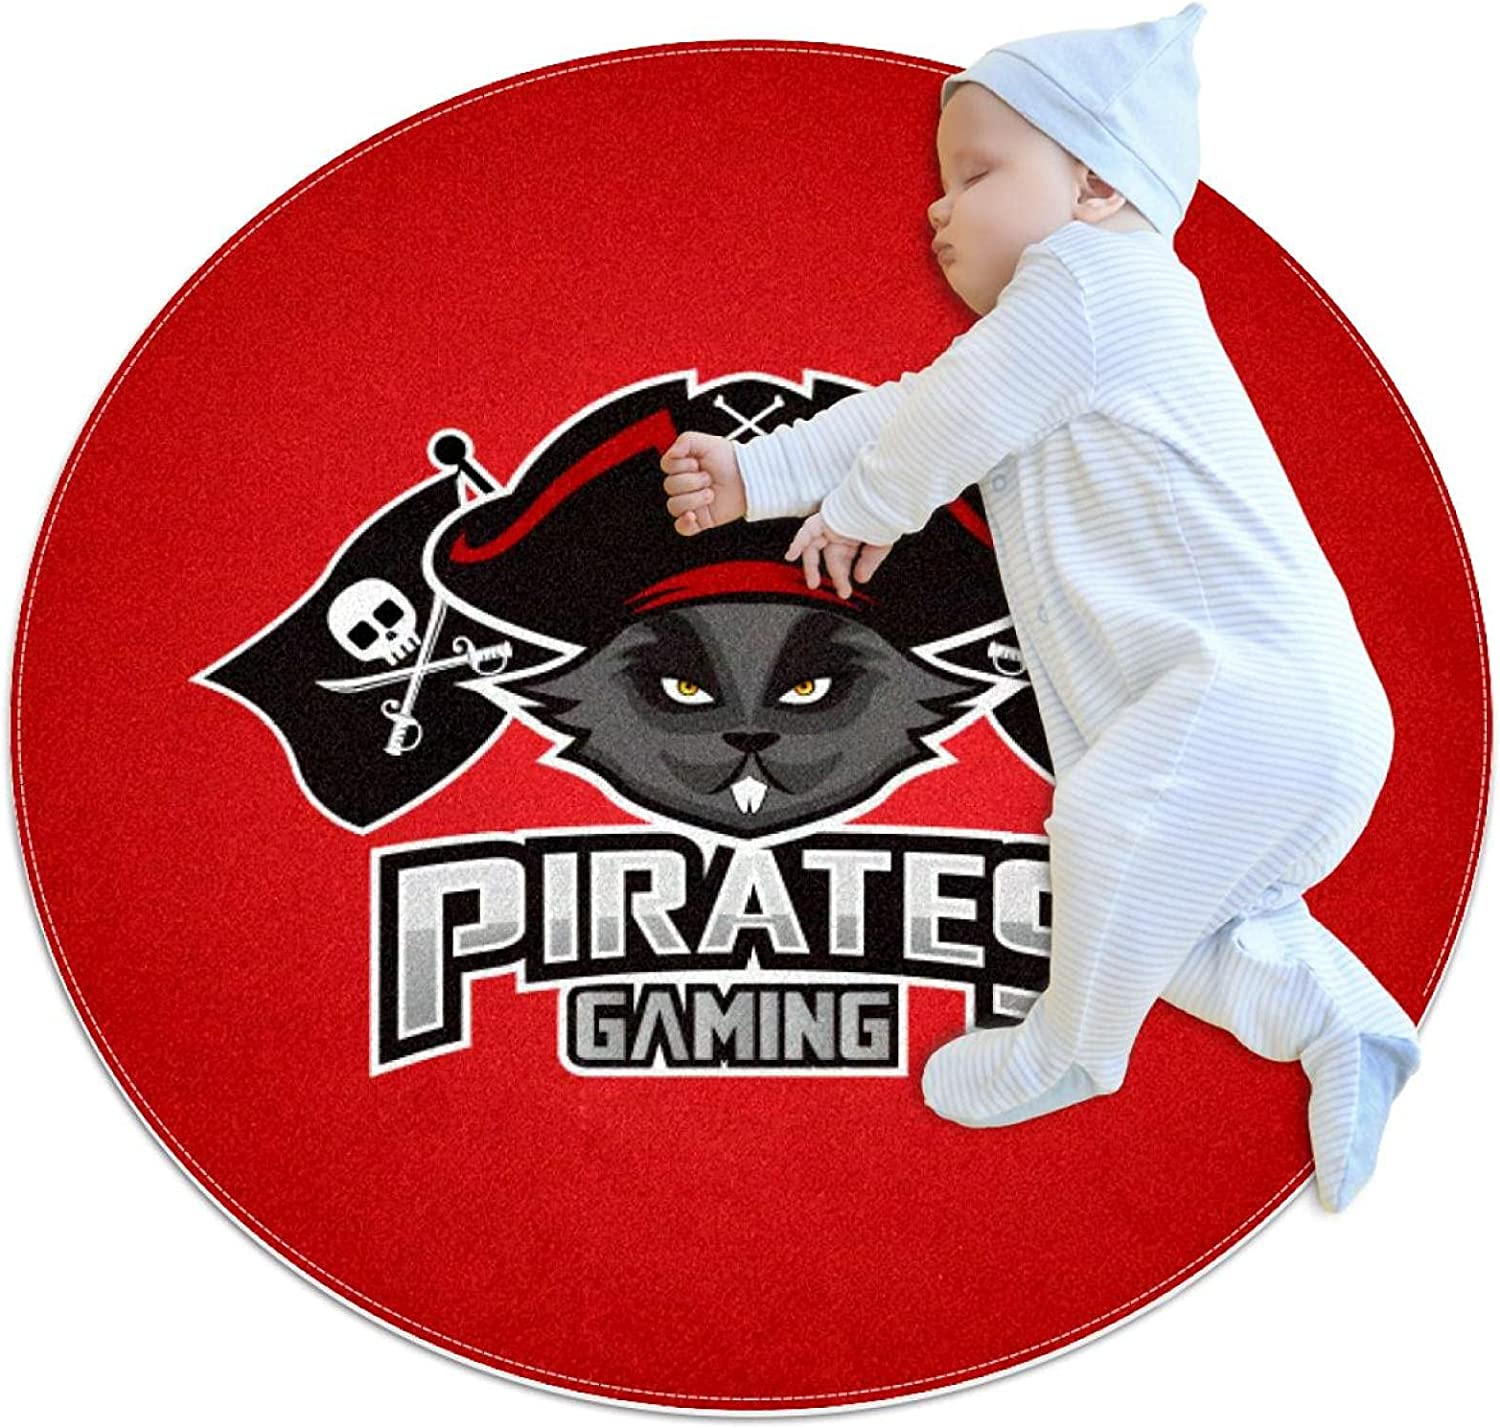 Pirates Mascot red Round Area R Children Pattern Rug Challenge the lowest price of Japan Albuquerque Mall ☆